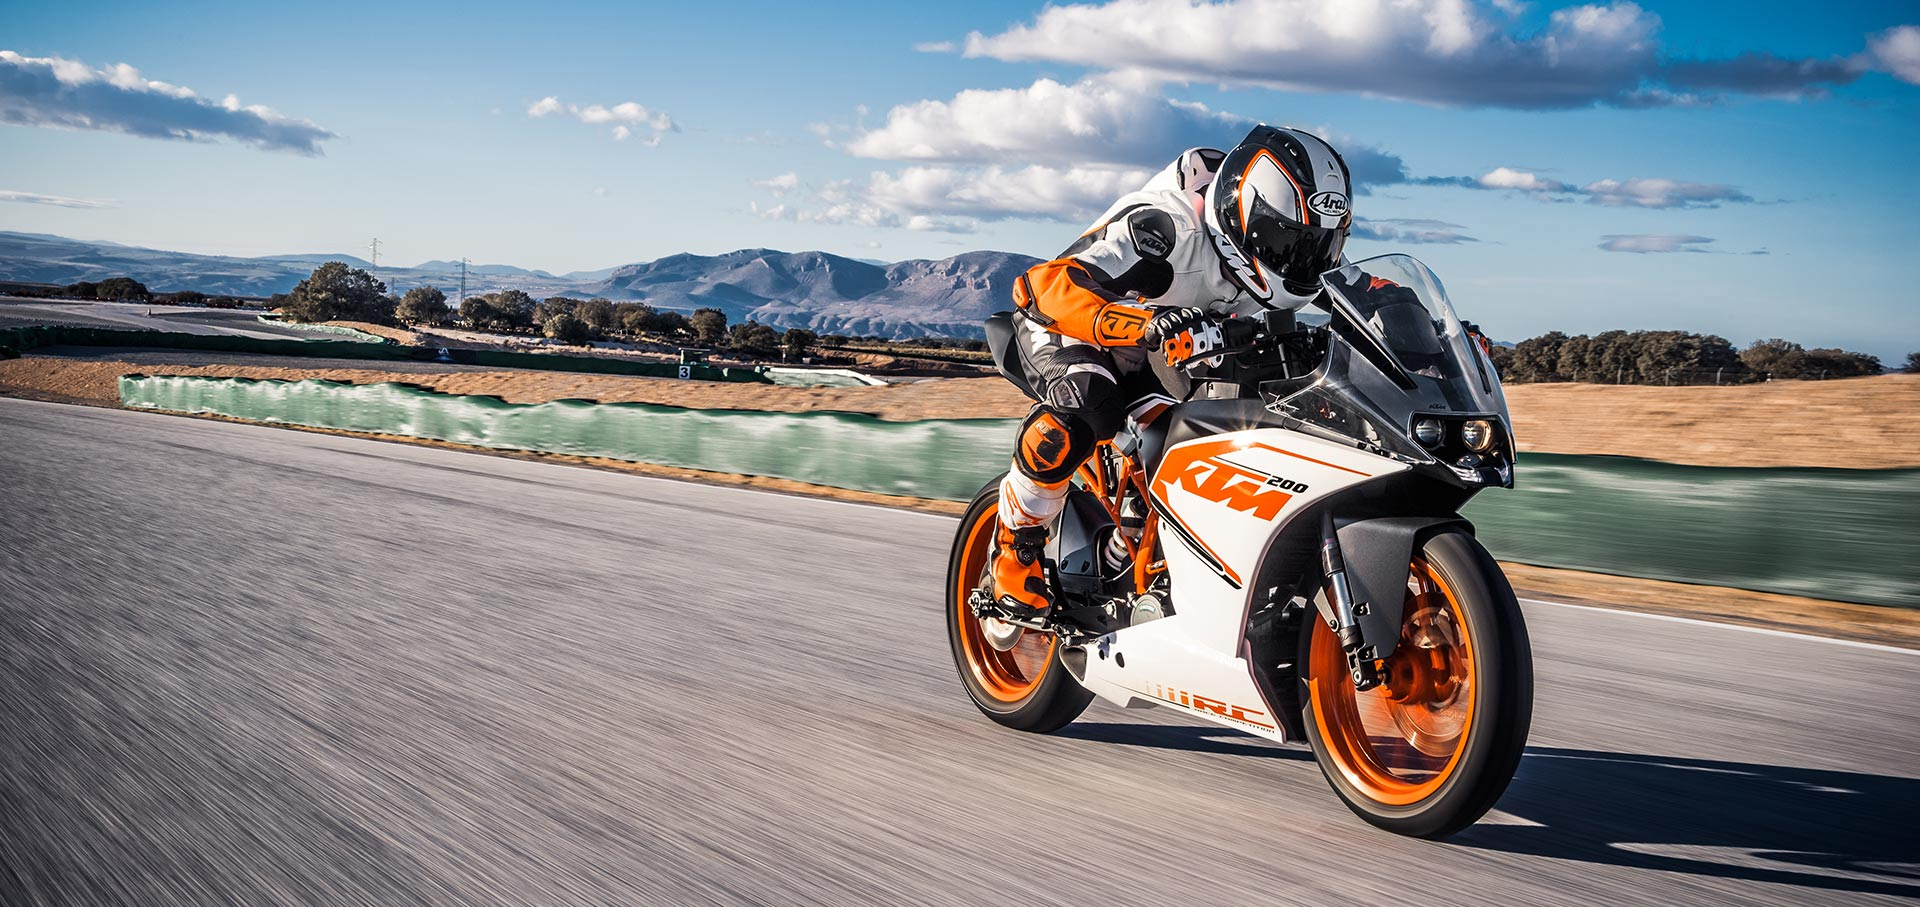 KTM New RC200 Race Track 005 p7